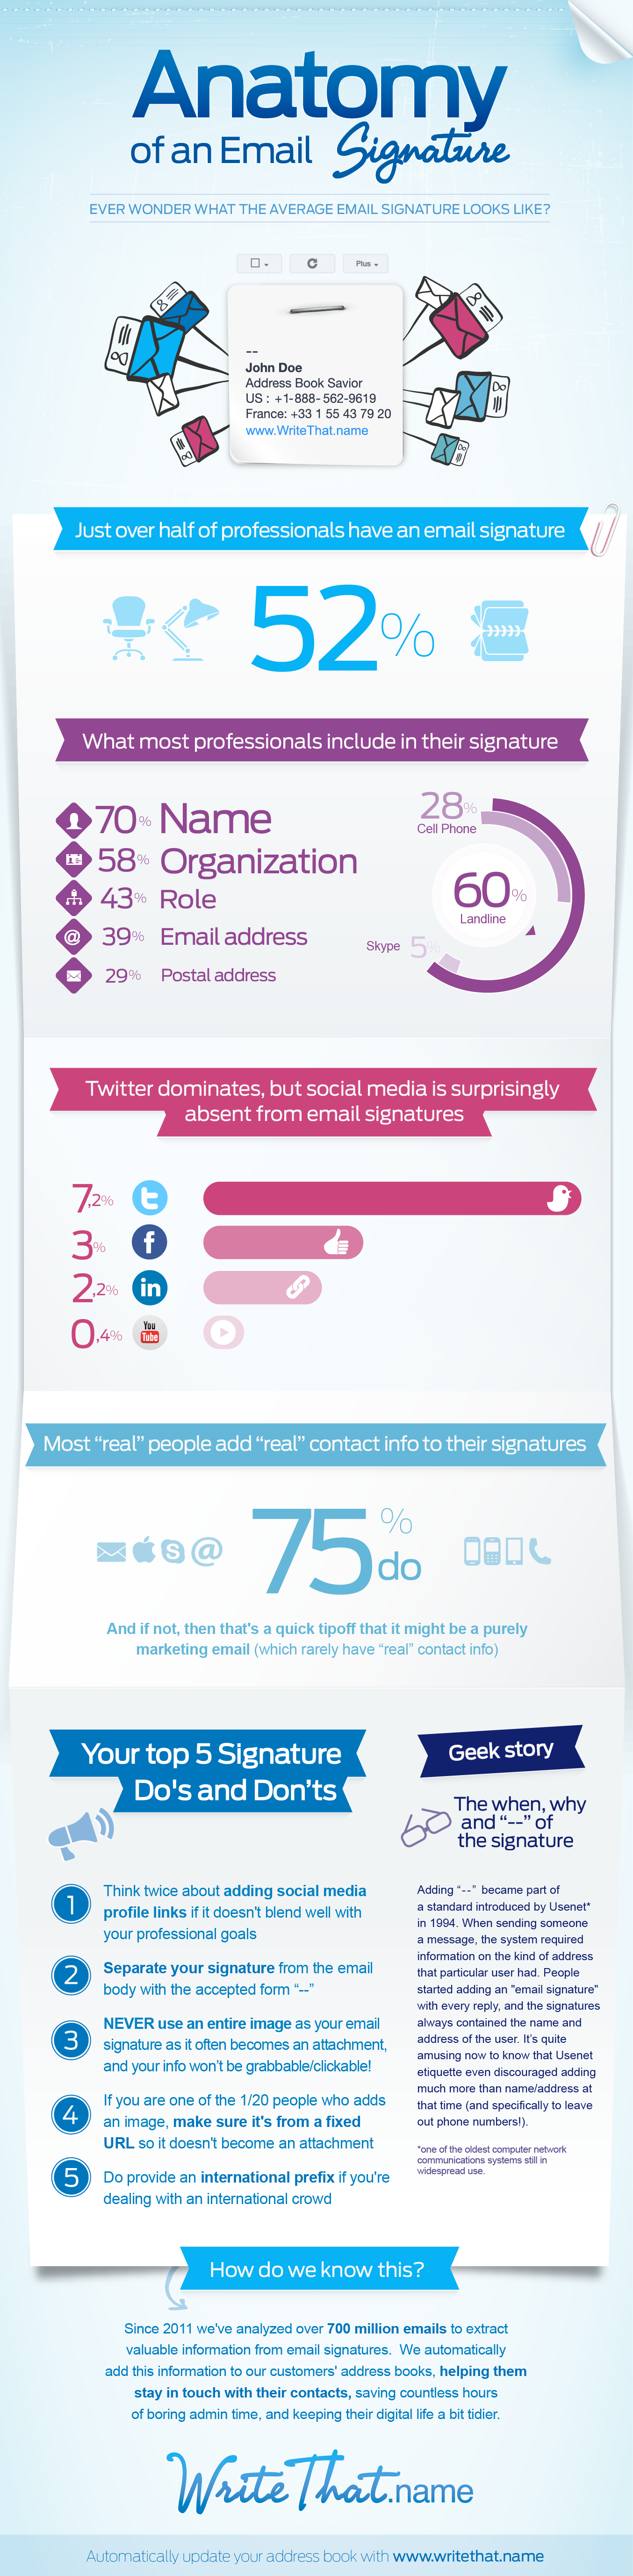 Anatomy Of An Email Signature Infographic